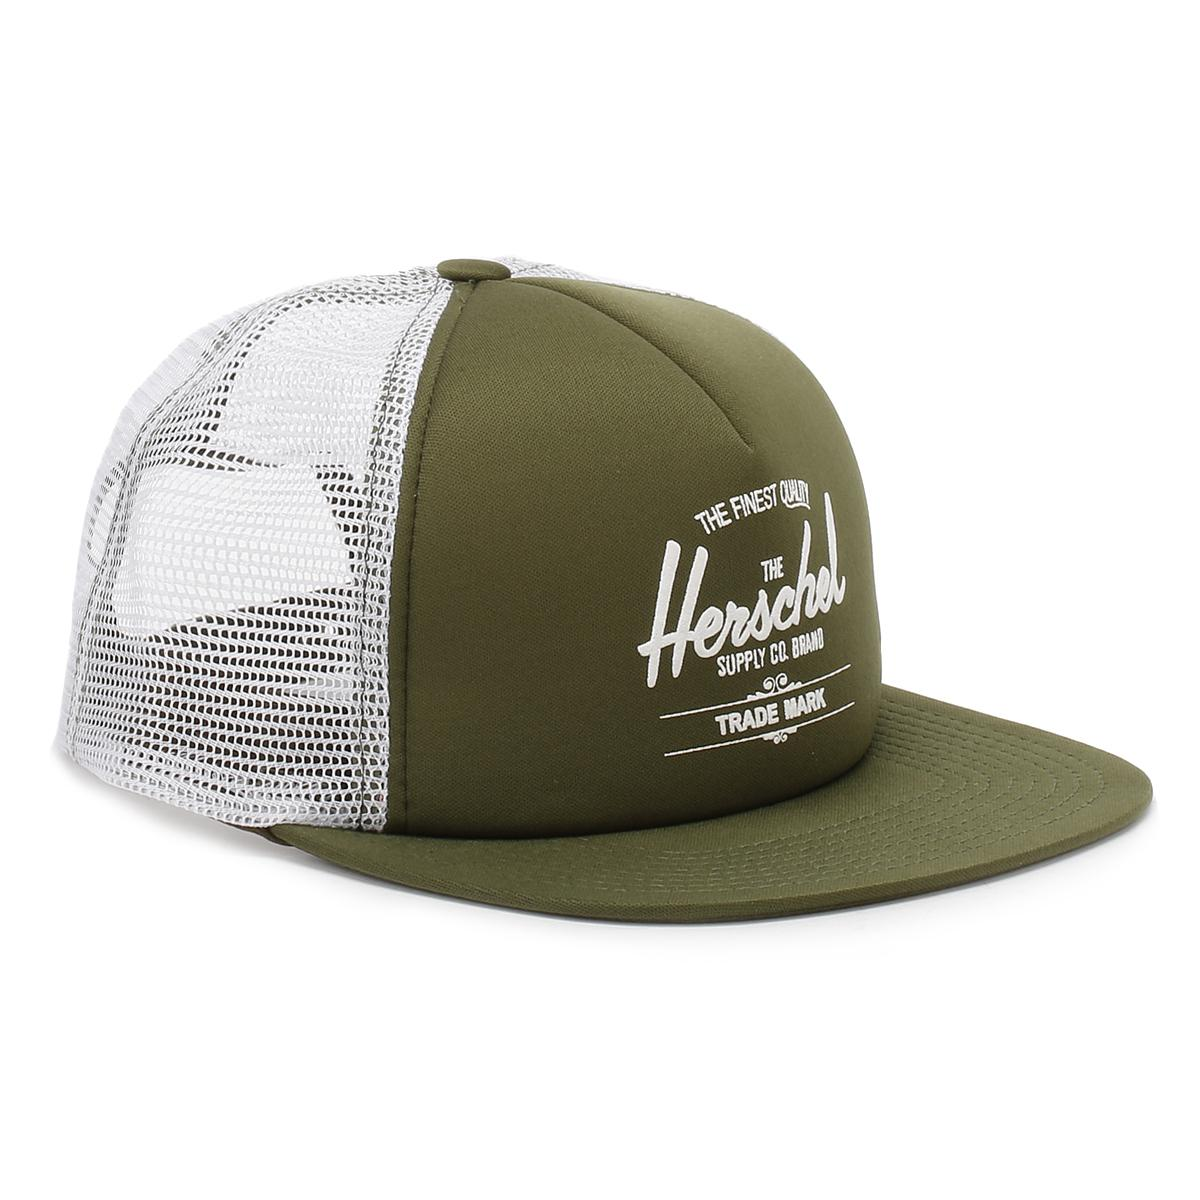 ec30210ef36 Lyst - Herschel Supply Co. Army Whaler Mesh Snapback Cap in Green ...